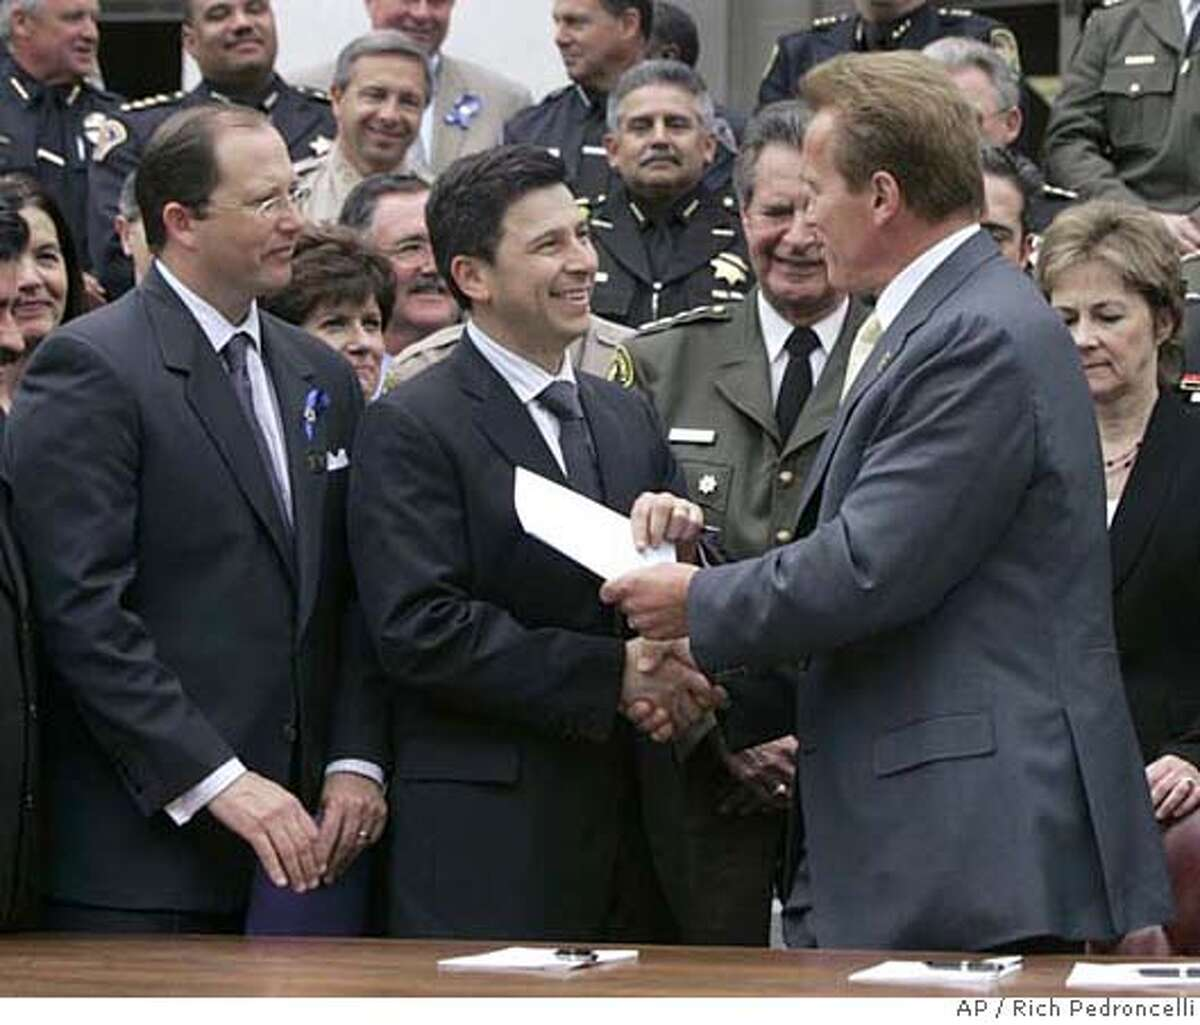 Gov. Arnold Schwarzenegger, right, gives Assembly Speaker Fabian Nunez, D-Los Angeles, second from left, a copy of the prison-reform plan he signed, as Assembly Minority Leader Mike Villines, R-Clovis, left, looks on at the Capitol in Sacramento, Calif., Thursday, May 3, 2007. The $.78 billion deal will add 53,000 prison and country jails beds and improve rehabilitation and drug treatment programs and vocational education for inmates.(AP Photo/Rich Pedroncelli)